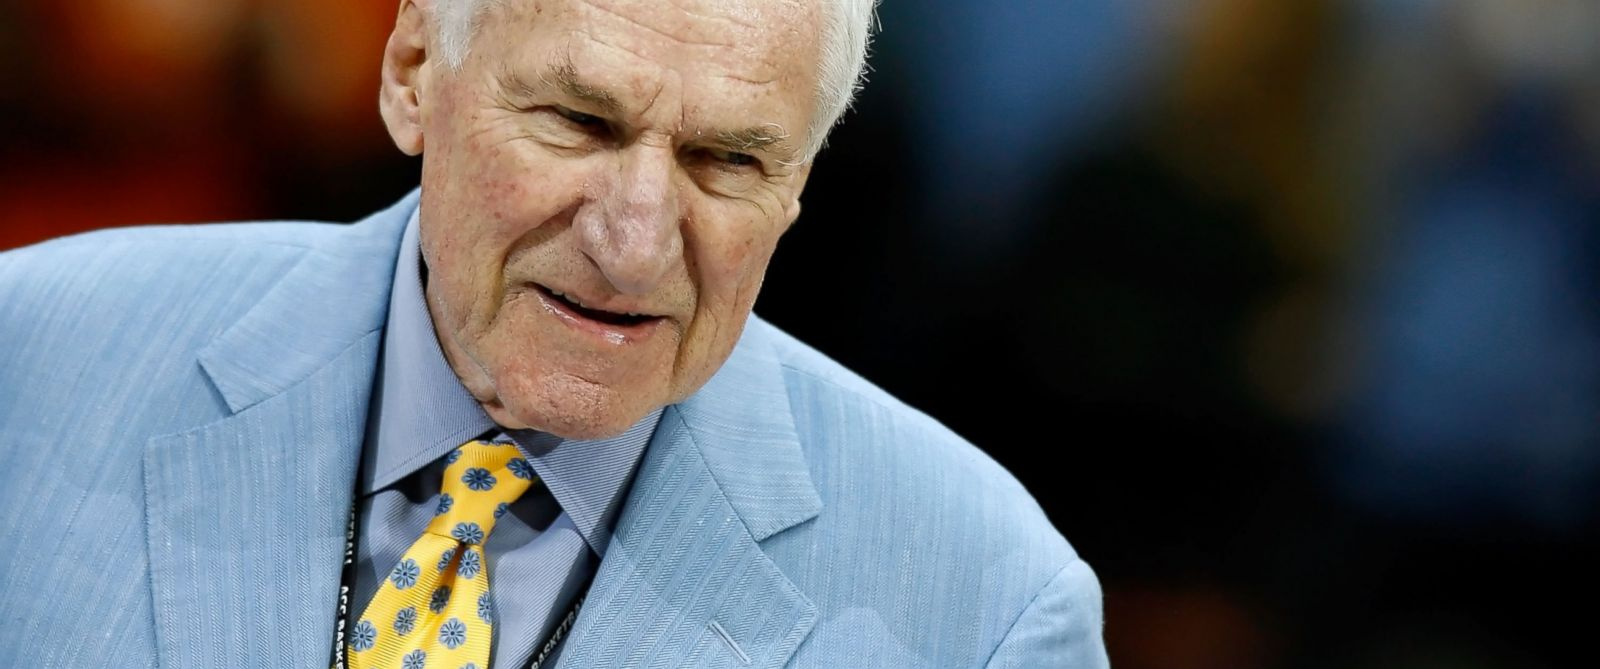 PHOTO: Former North Carolina Tar Heels head coach Dean Smith attends a halftime ceremony honoring ACC legends on March 15, 2008 in Charlotte, N.C.